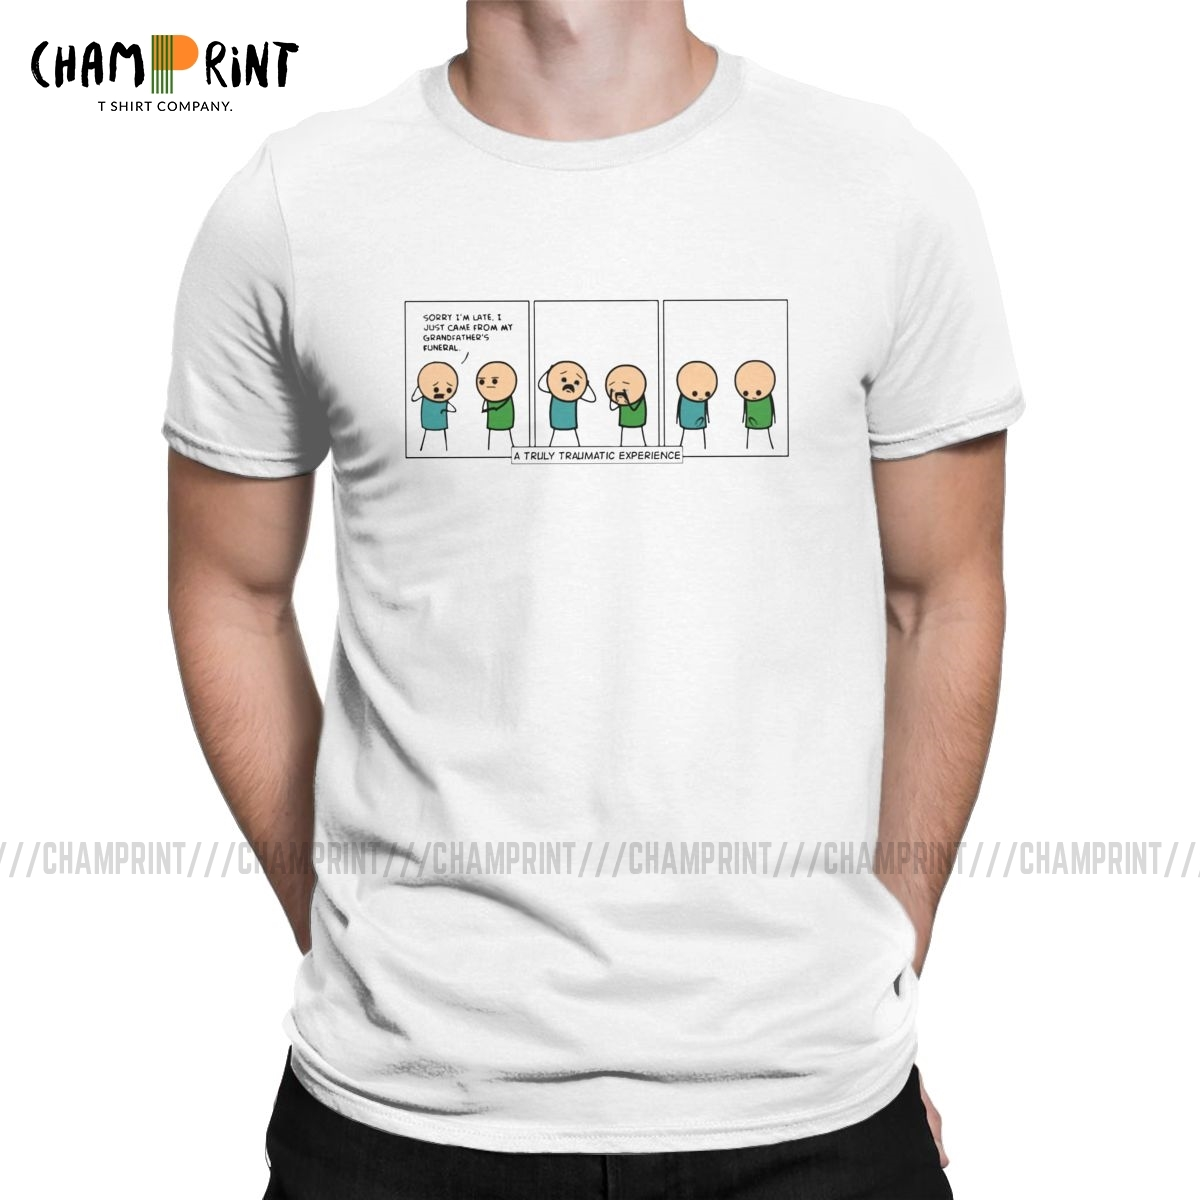 Hipster Cyanide And Happiness Funny Comic T-Shirts for Men Round Neck Pure Cotton T Shirt Short Sleeve Tees Plus Size Tops image